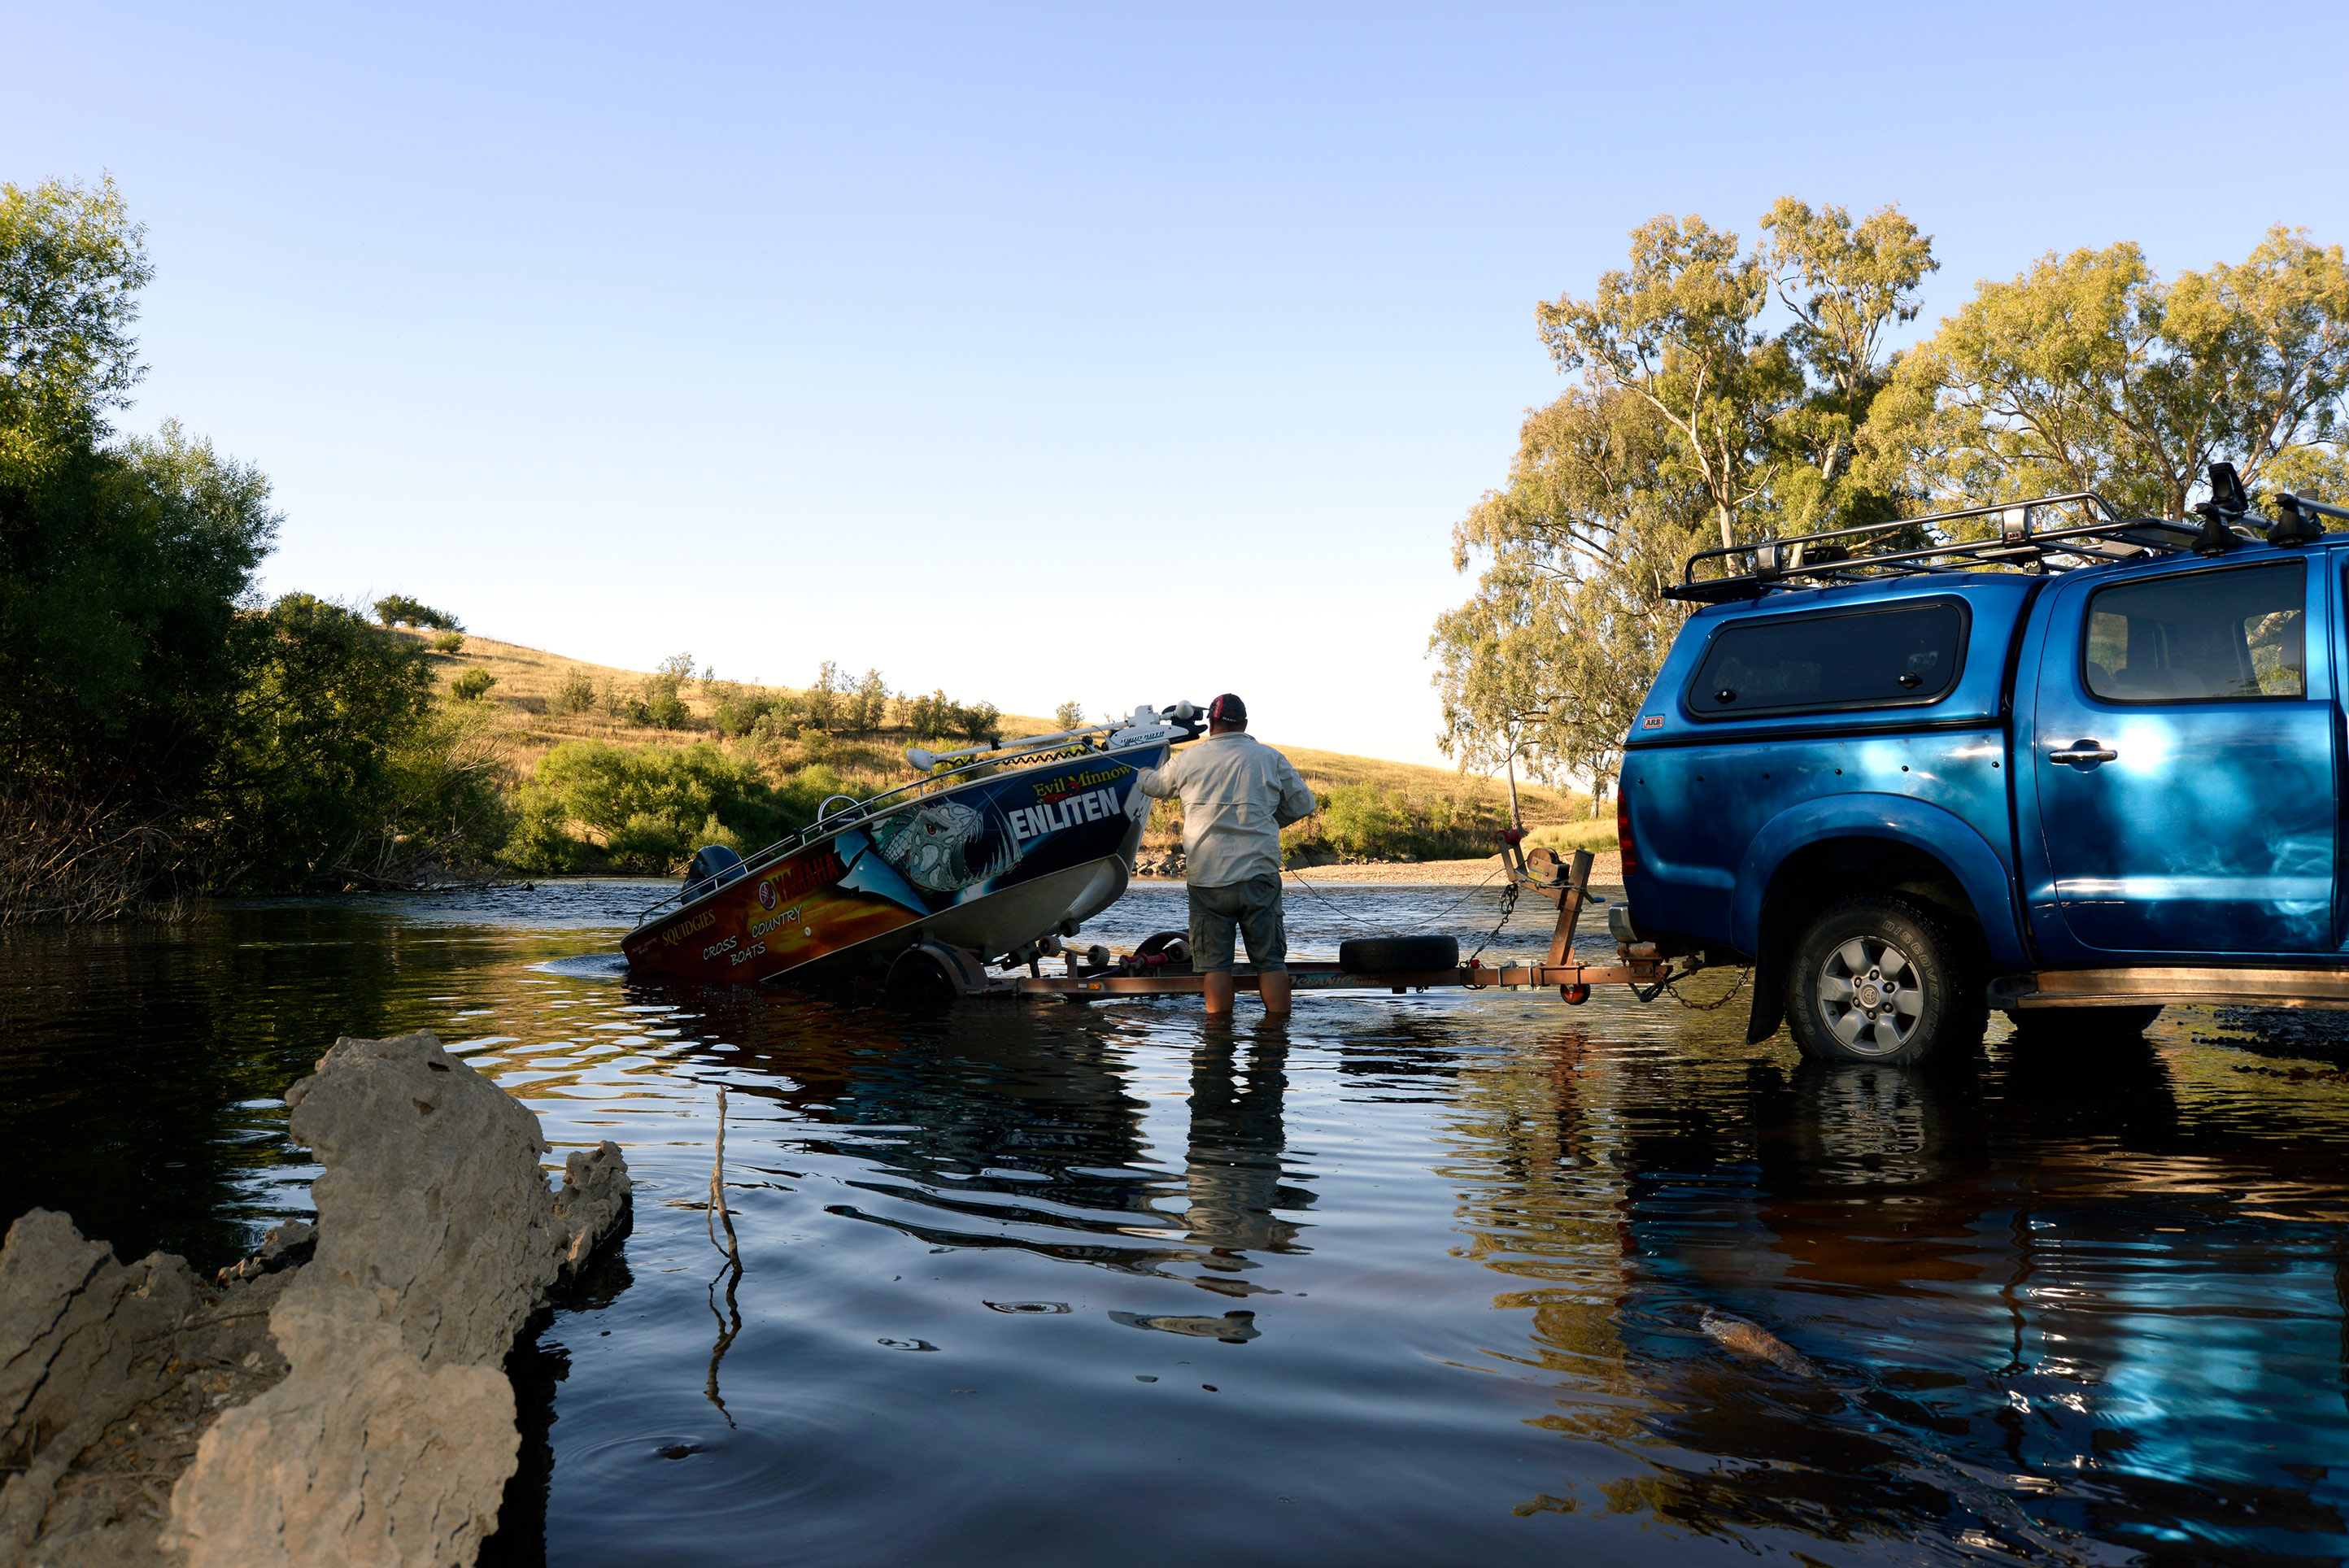 It's possible to get a trailer boat into some of the longer, deeper holes at times.